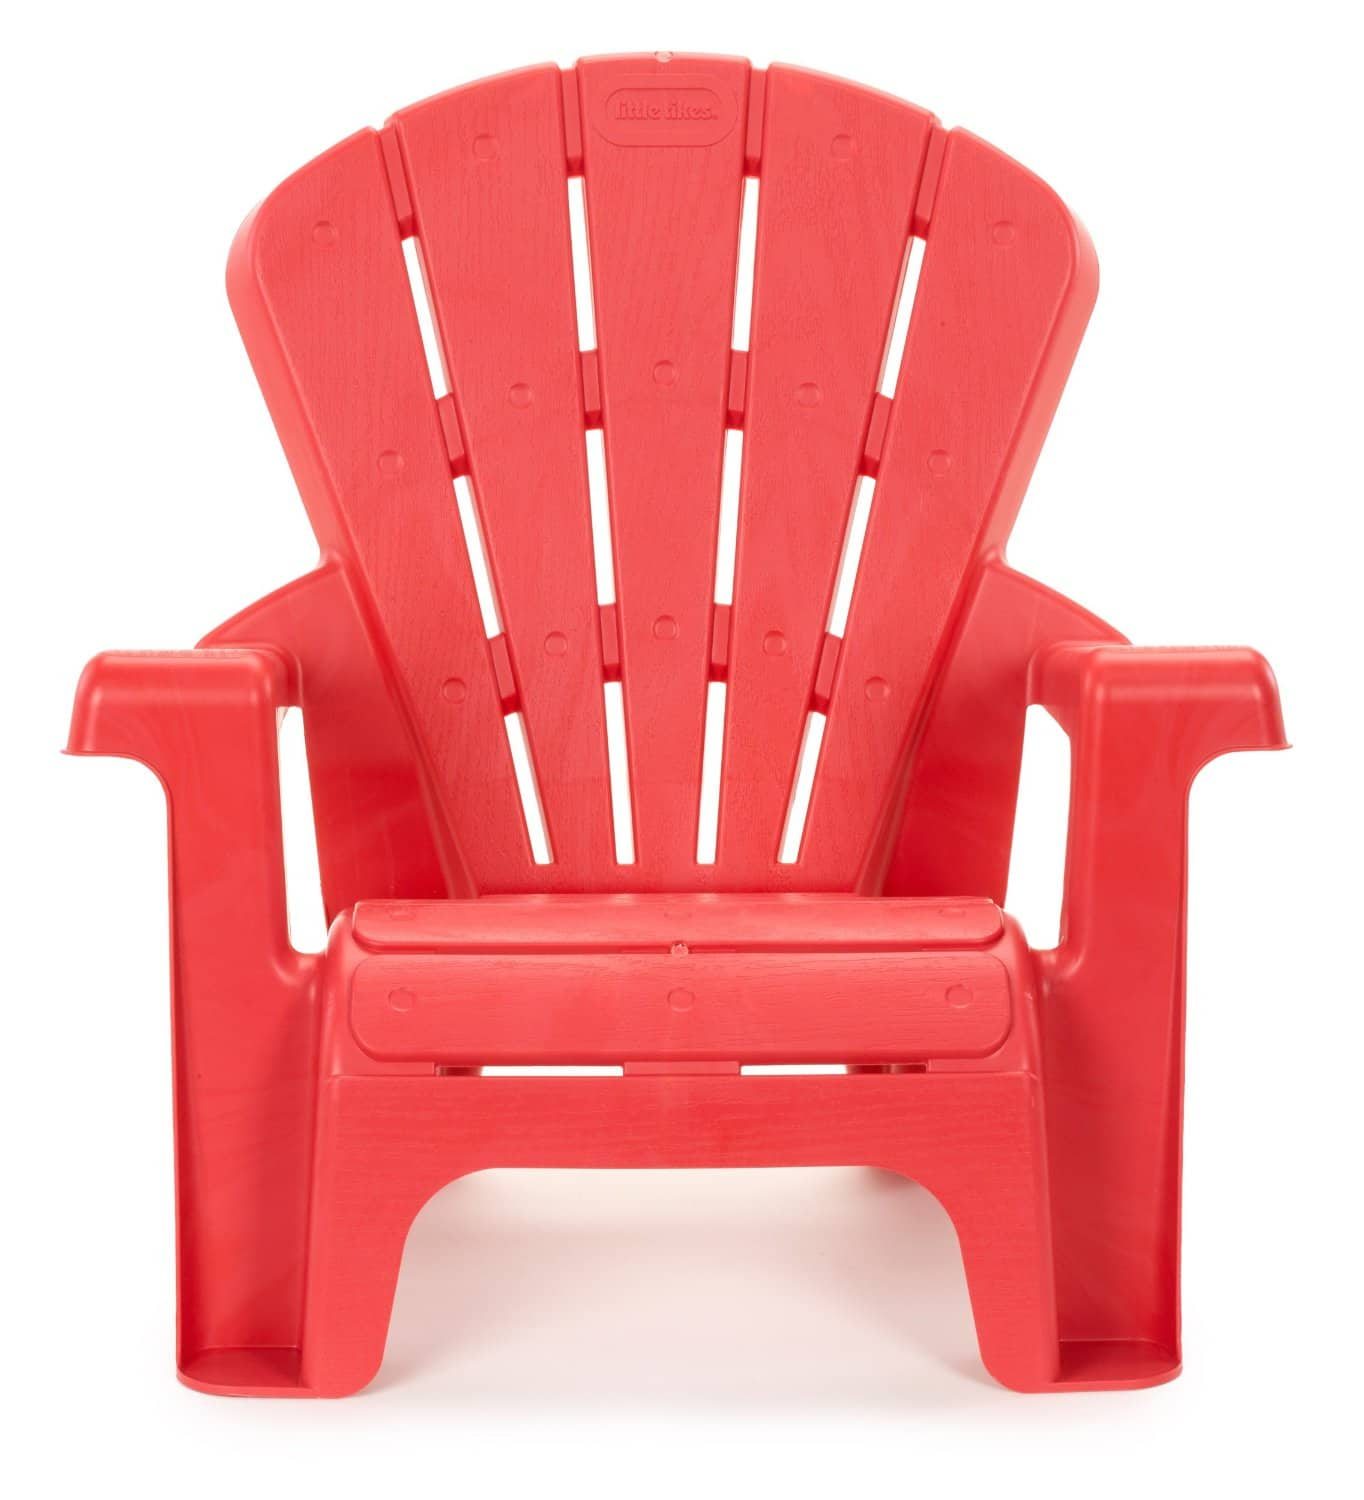 Kohl's Cardholders:  Little Tikes Garden Chair (Orange, Red, Pink)  3 for $15.40 + Free Shipping